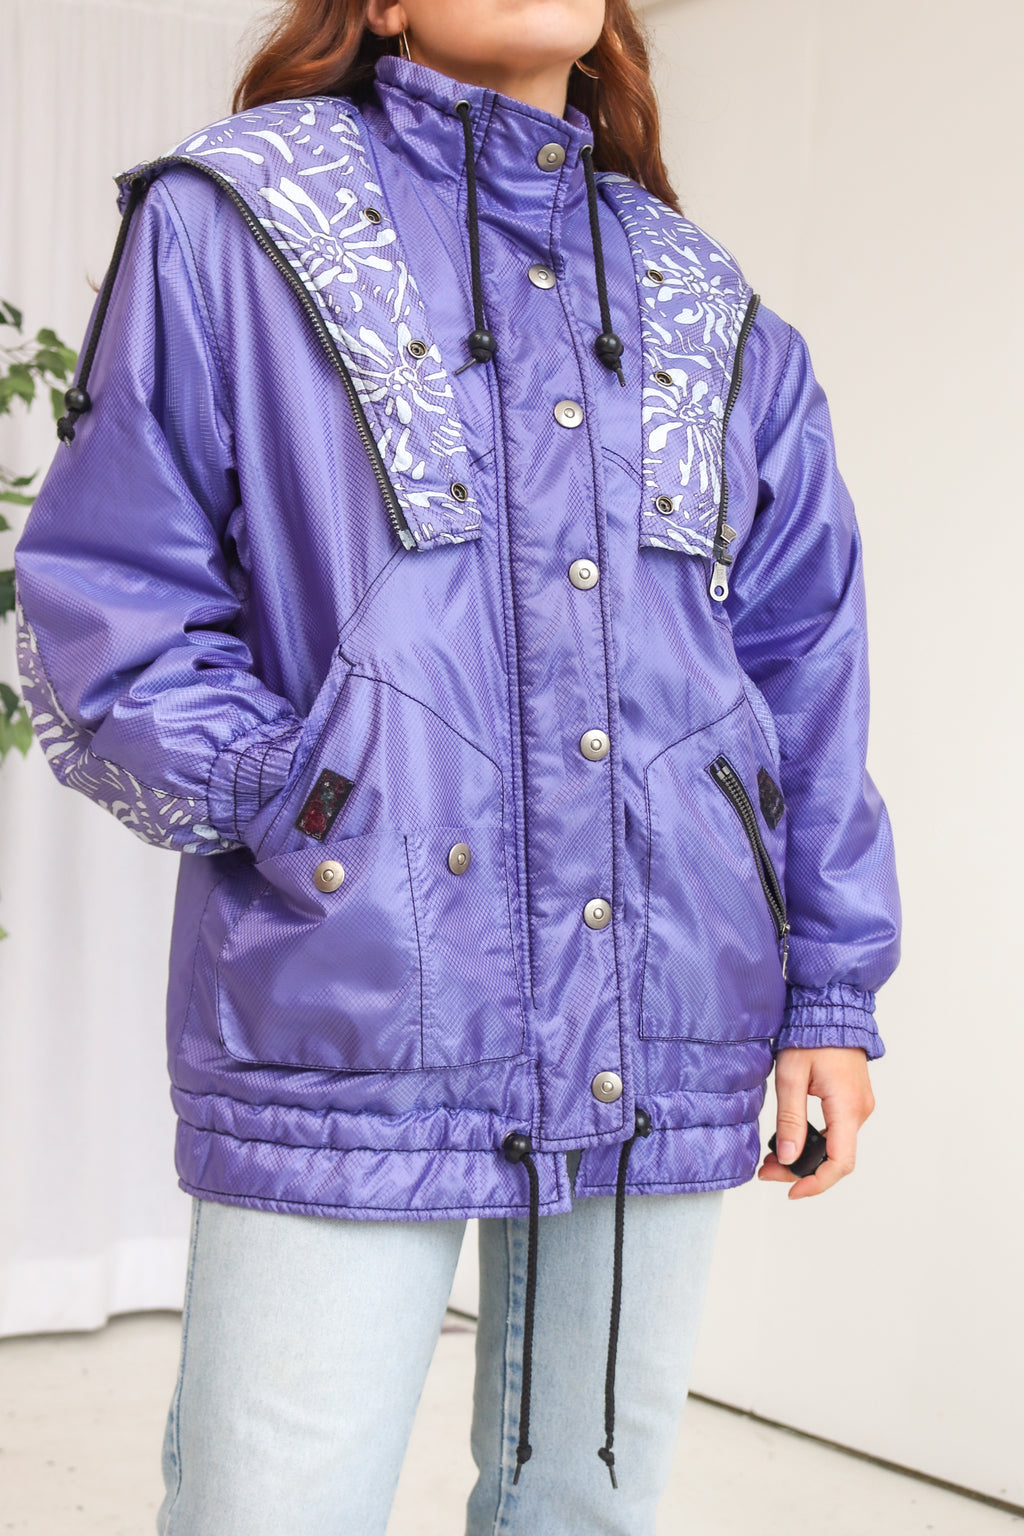 VintagePadded Coat in Purple - Dirty Disco